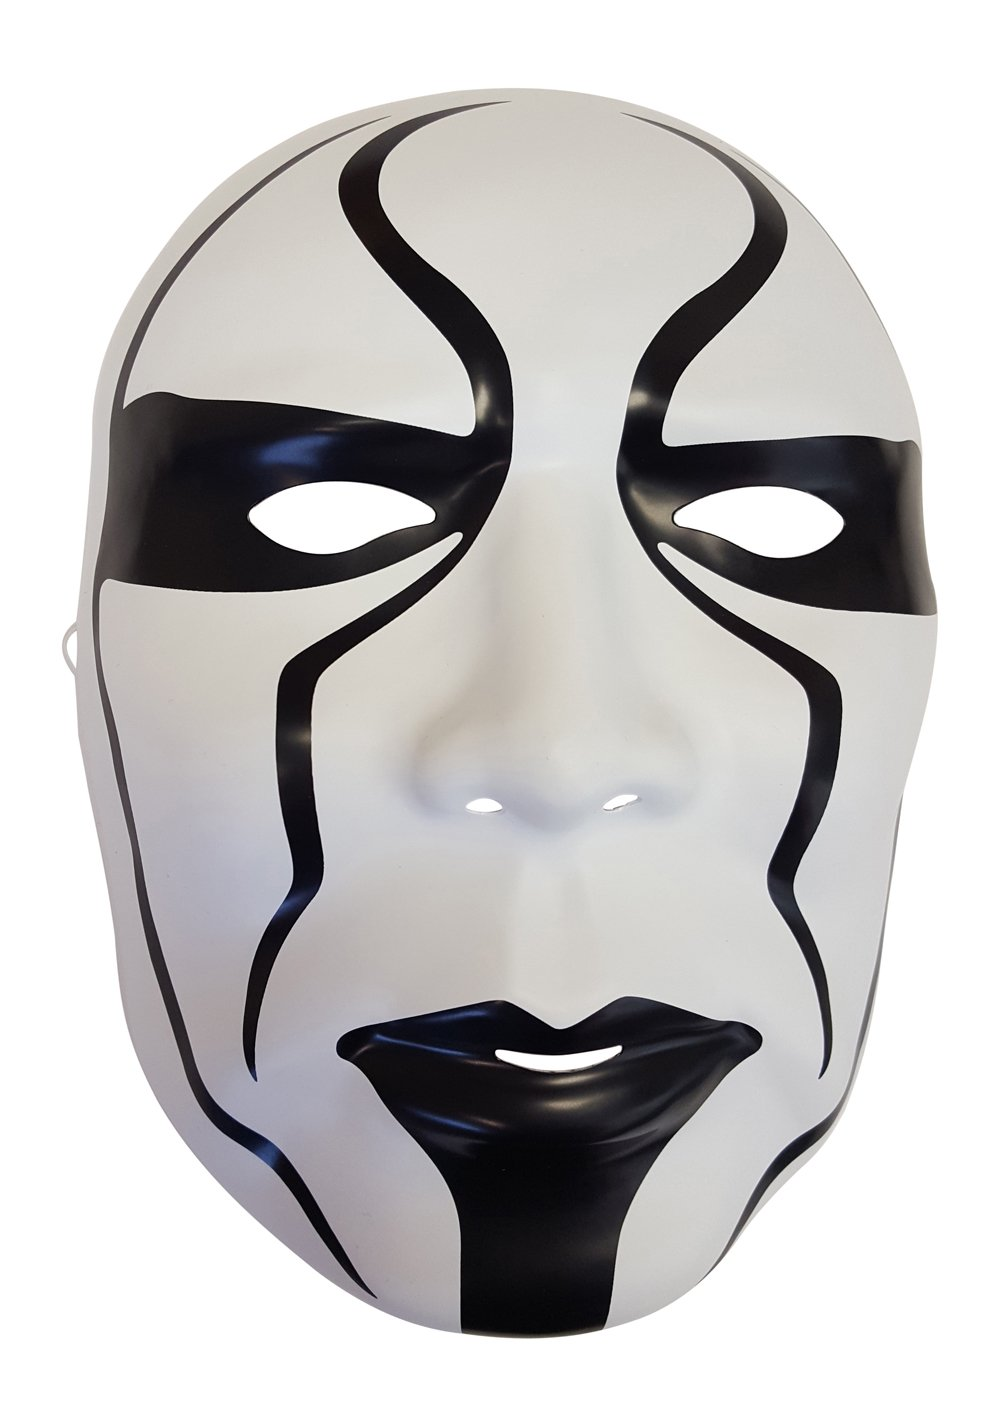 Sting Silent Warrior Plastic Halloween Party WWE Mask by WWE